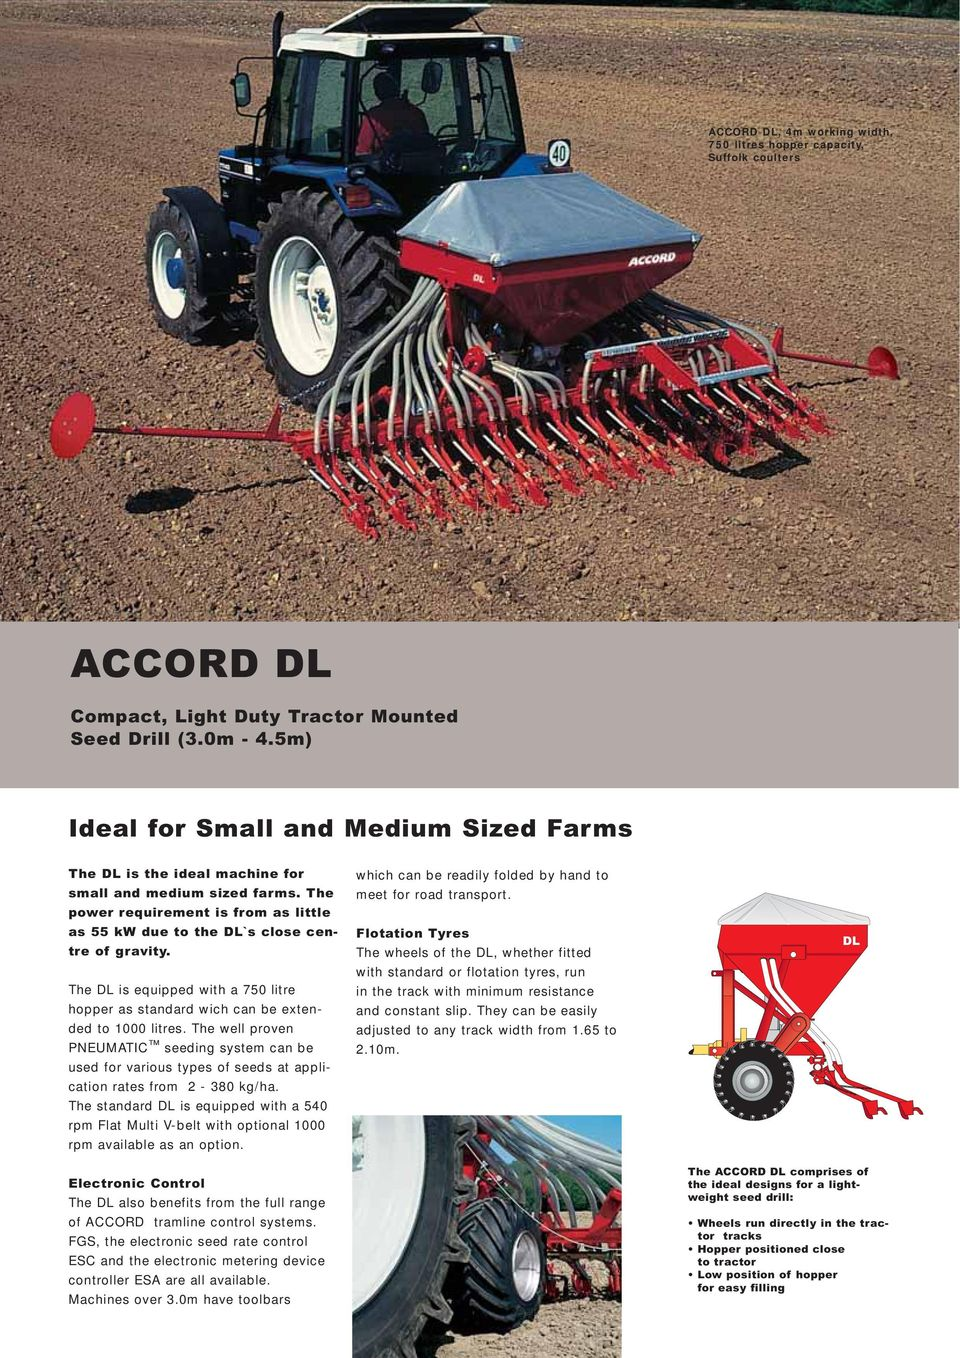 The DL is equipped with a 750 litre hopper as standard wich can be extended  to